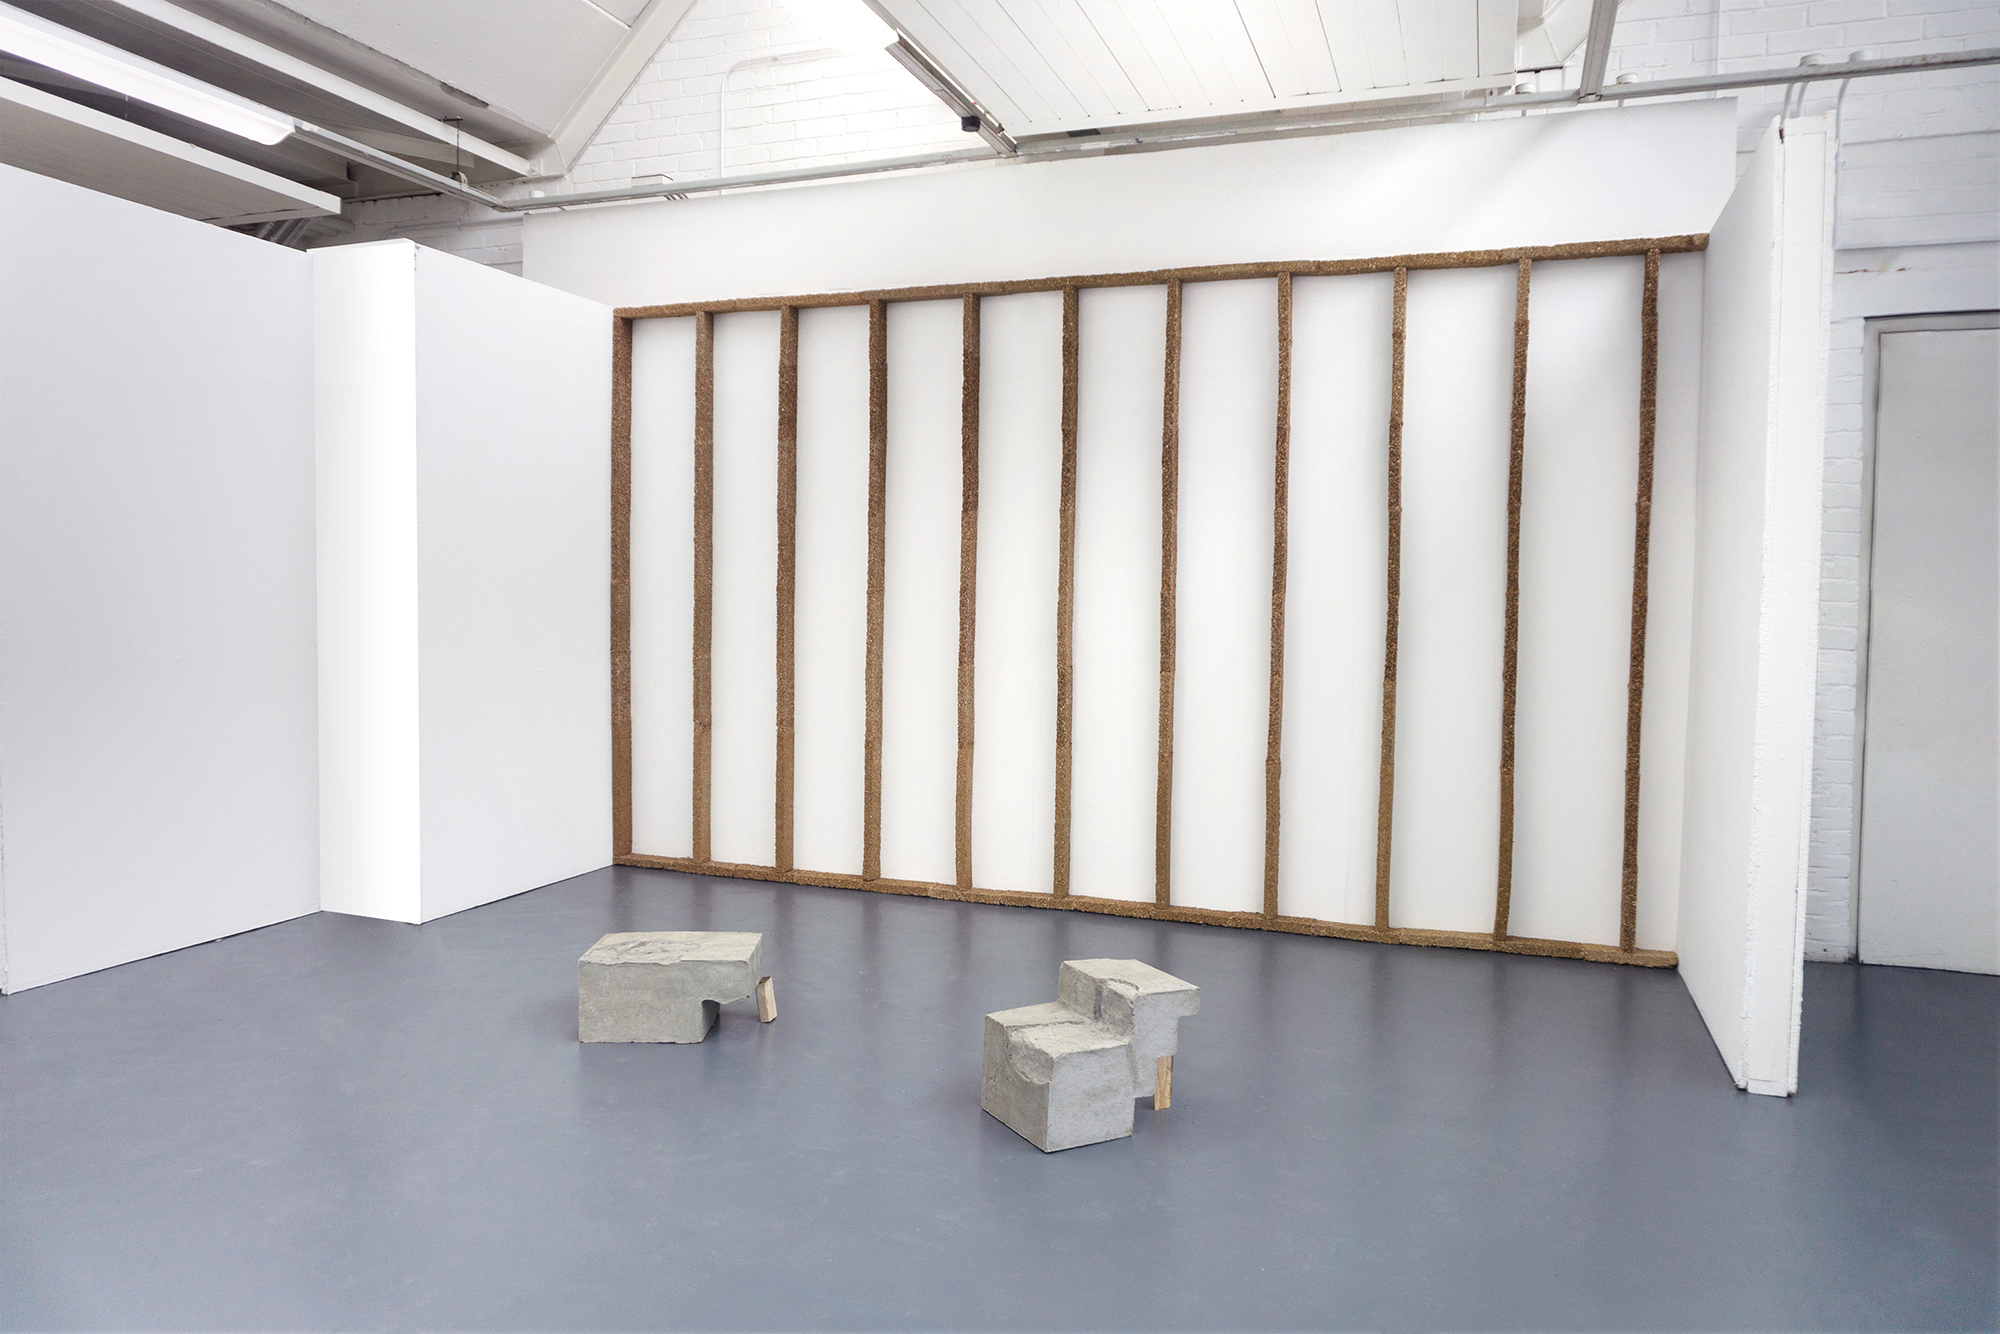 Wall (Dundee) and Broch Bricks , sawdust, paste, concrete, hand-carved lumber, dimensions variable, 2018